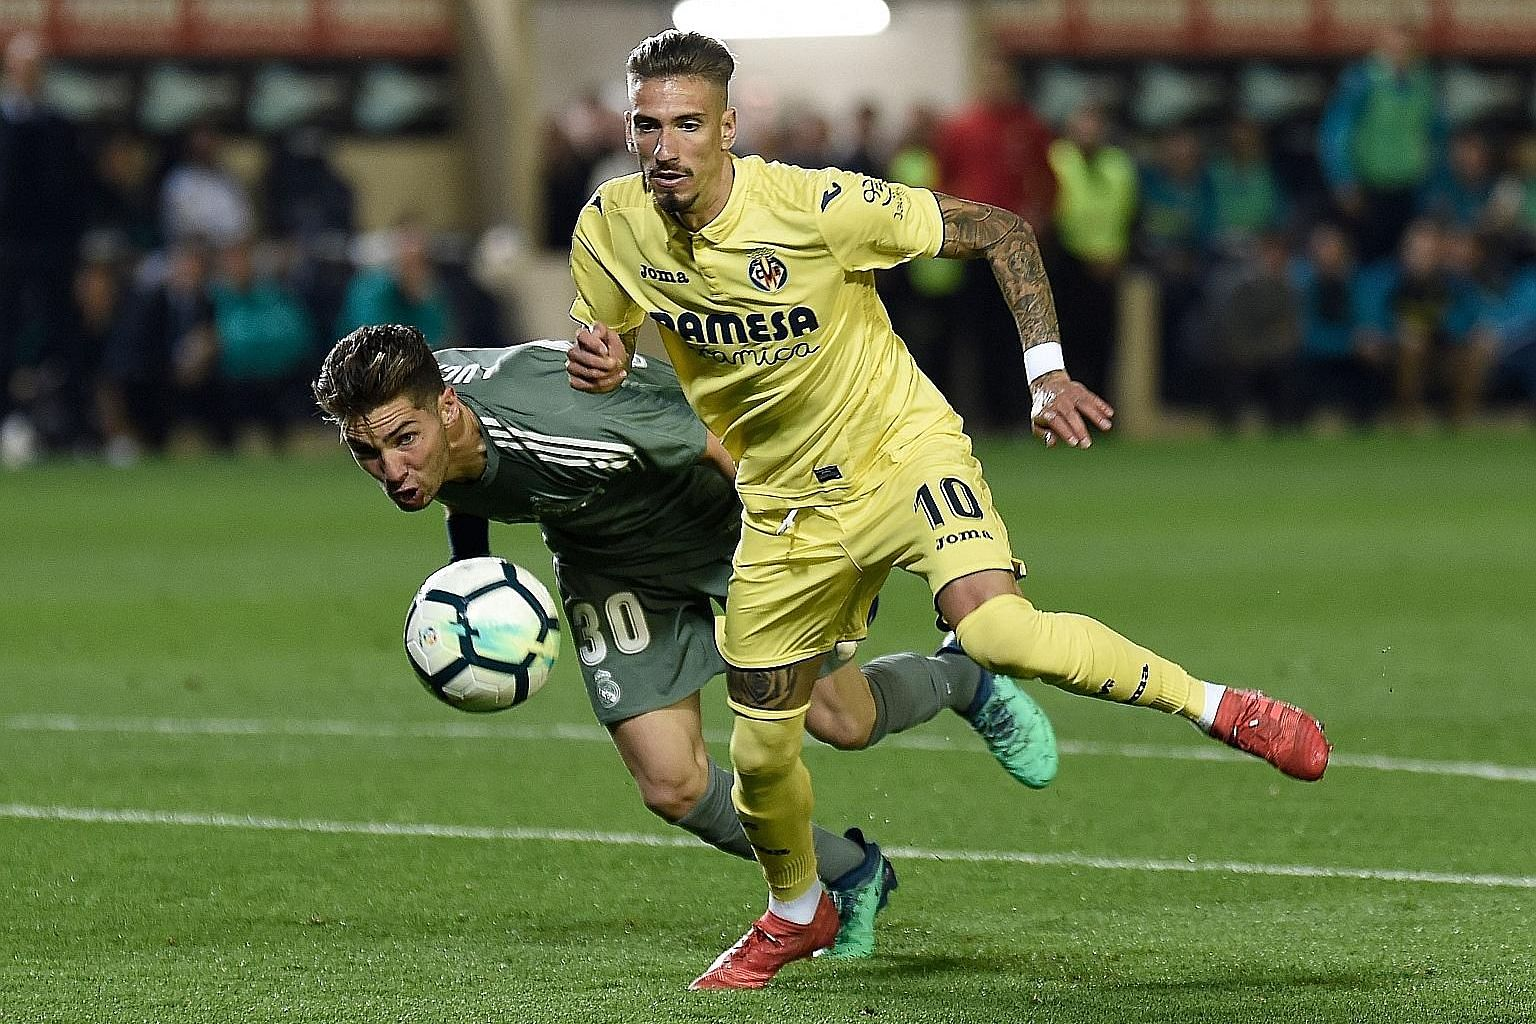 It was a proud moment for Real goalkeeper Luca Zidane Fernandez on his debut but the coach's son misjudged a long ball into the path of Villarreal midfielder Samu Castillejo, who dribbled past him to equalise in the 2-2 draw in their final match of t